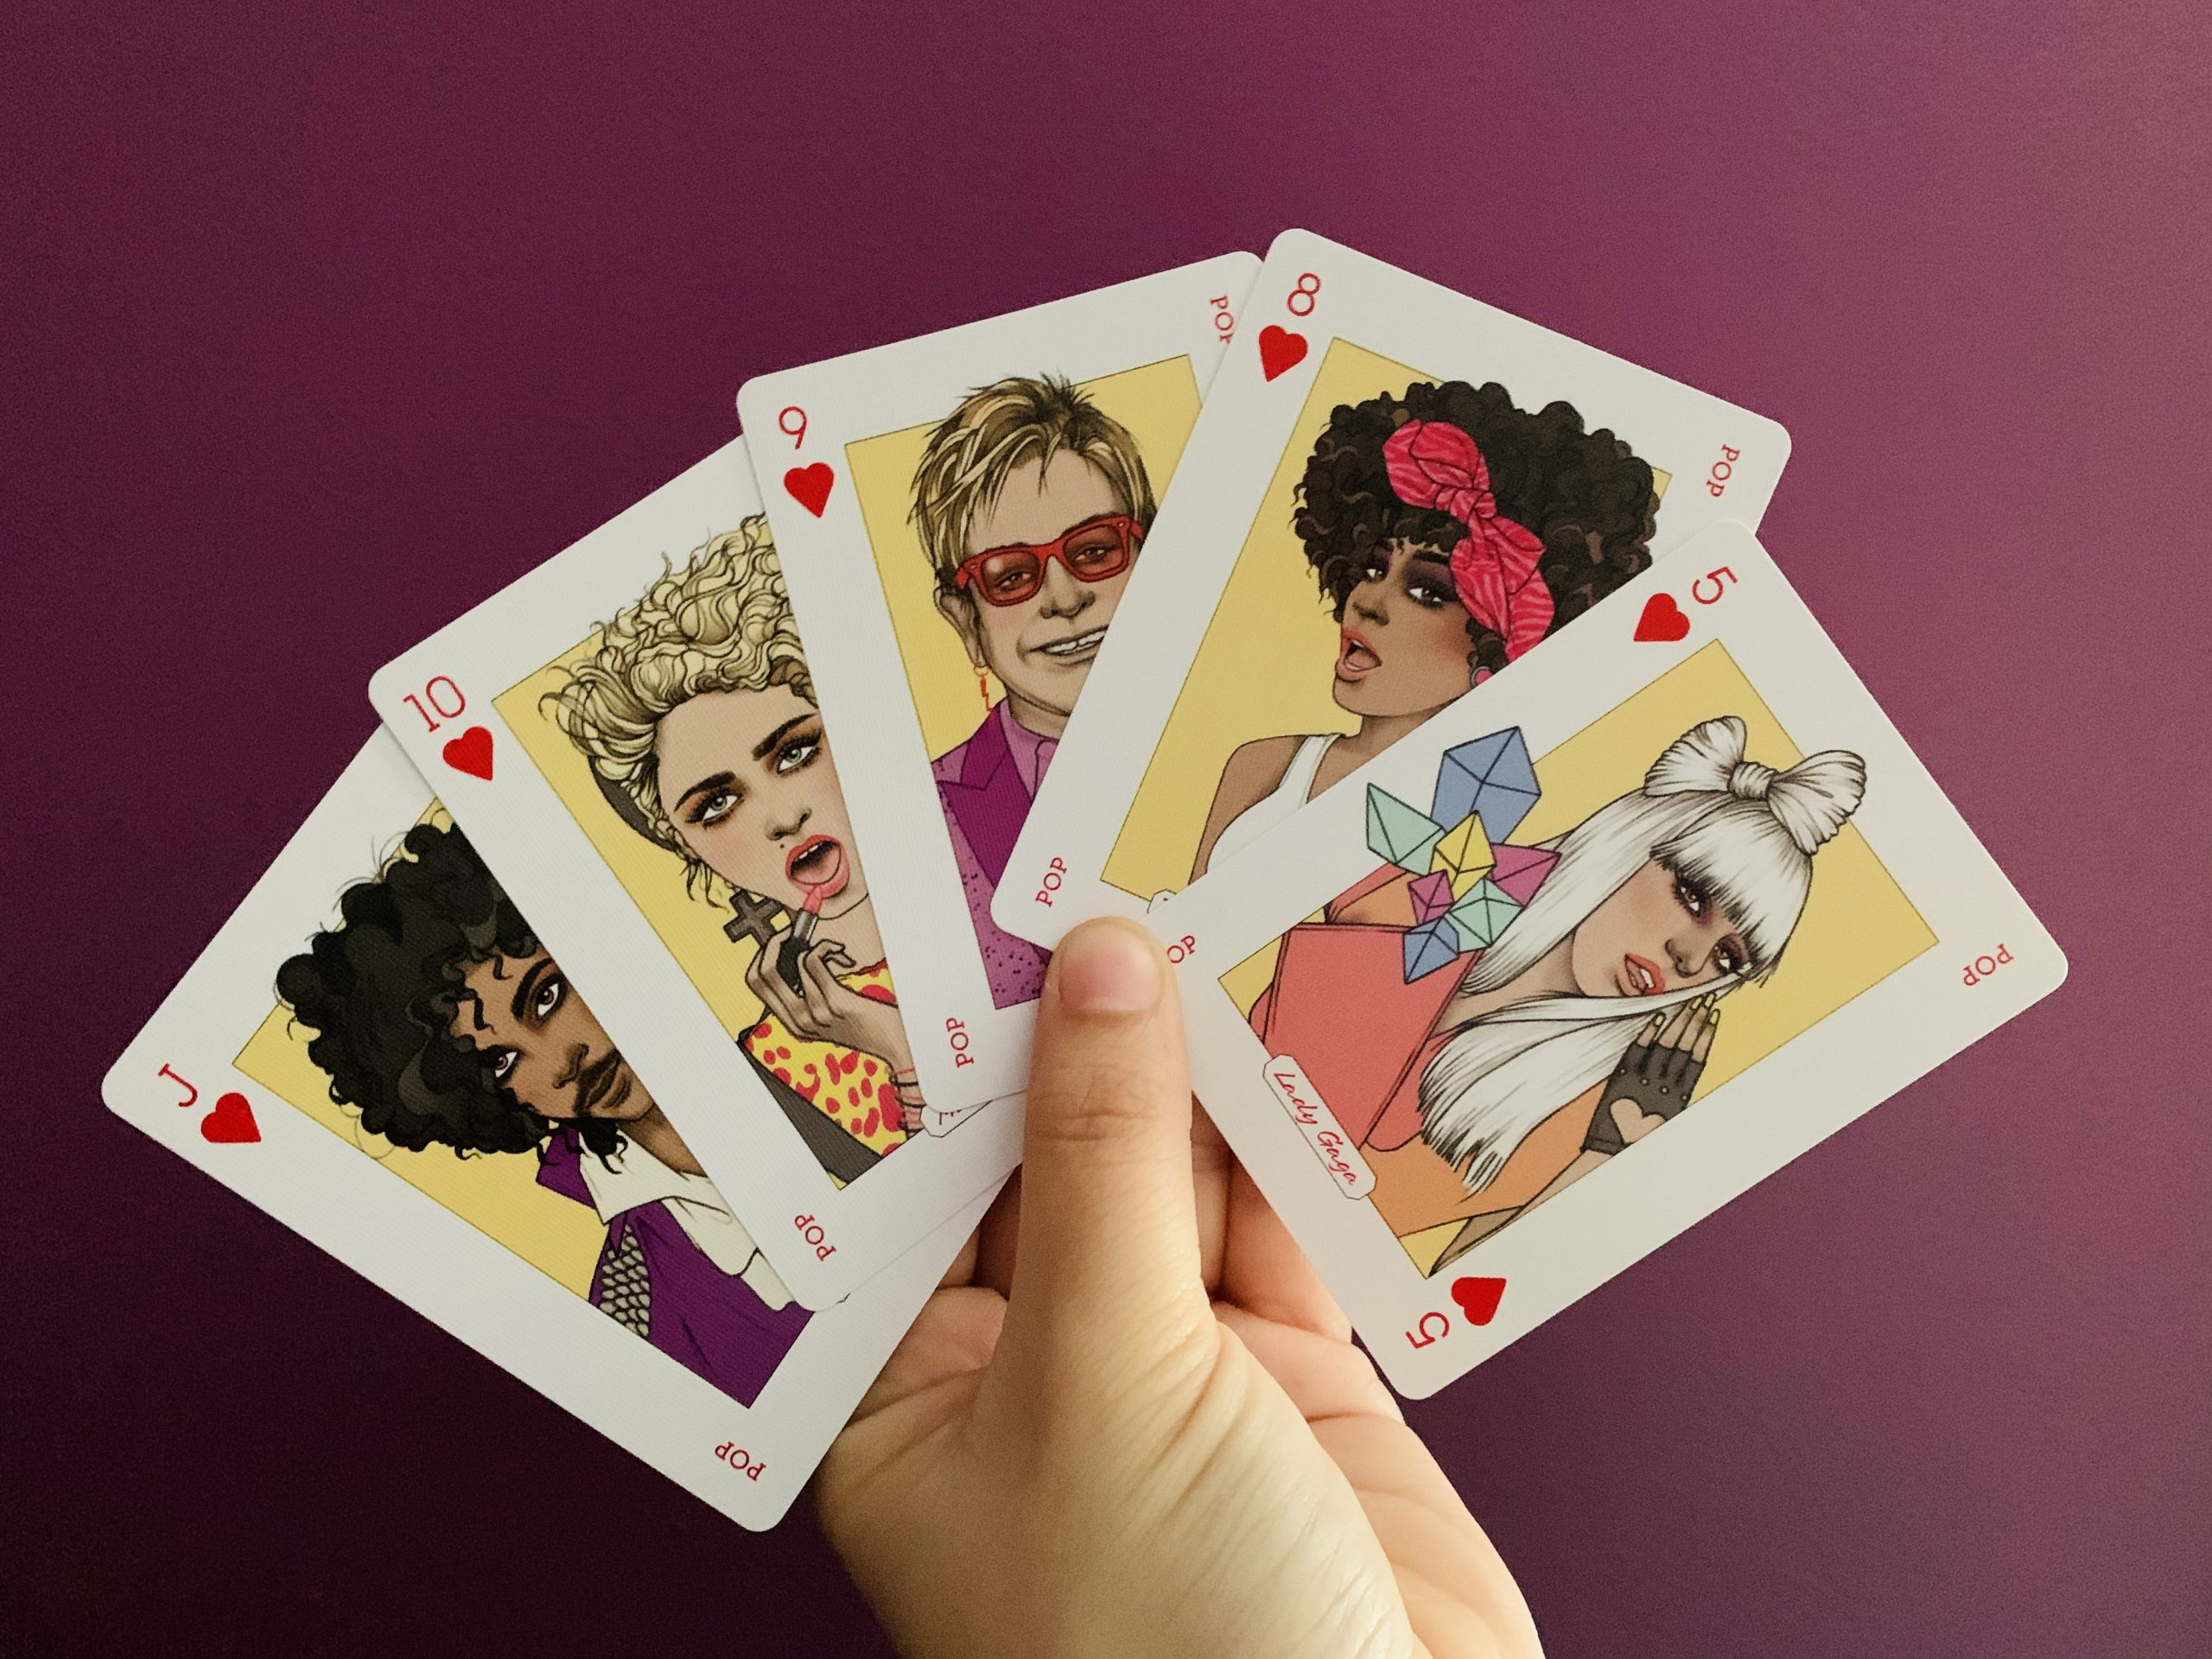 Music Genius Playing Cards: Five Hearts for This Deck!